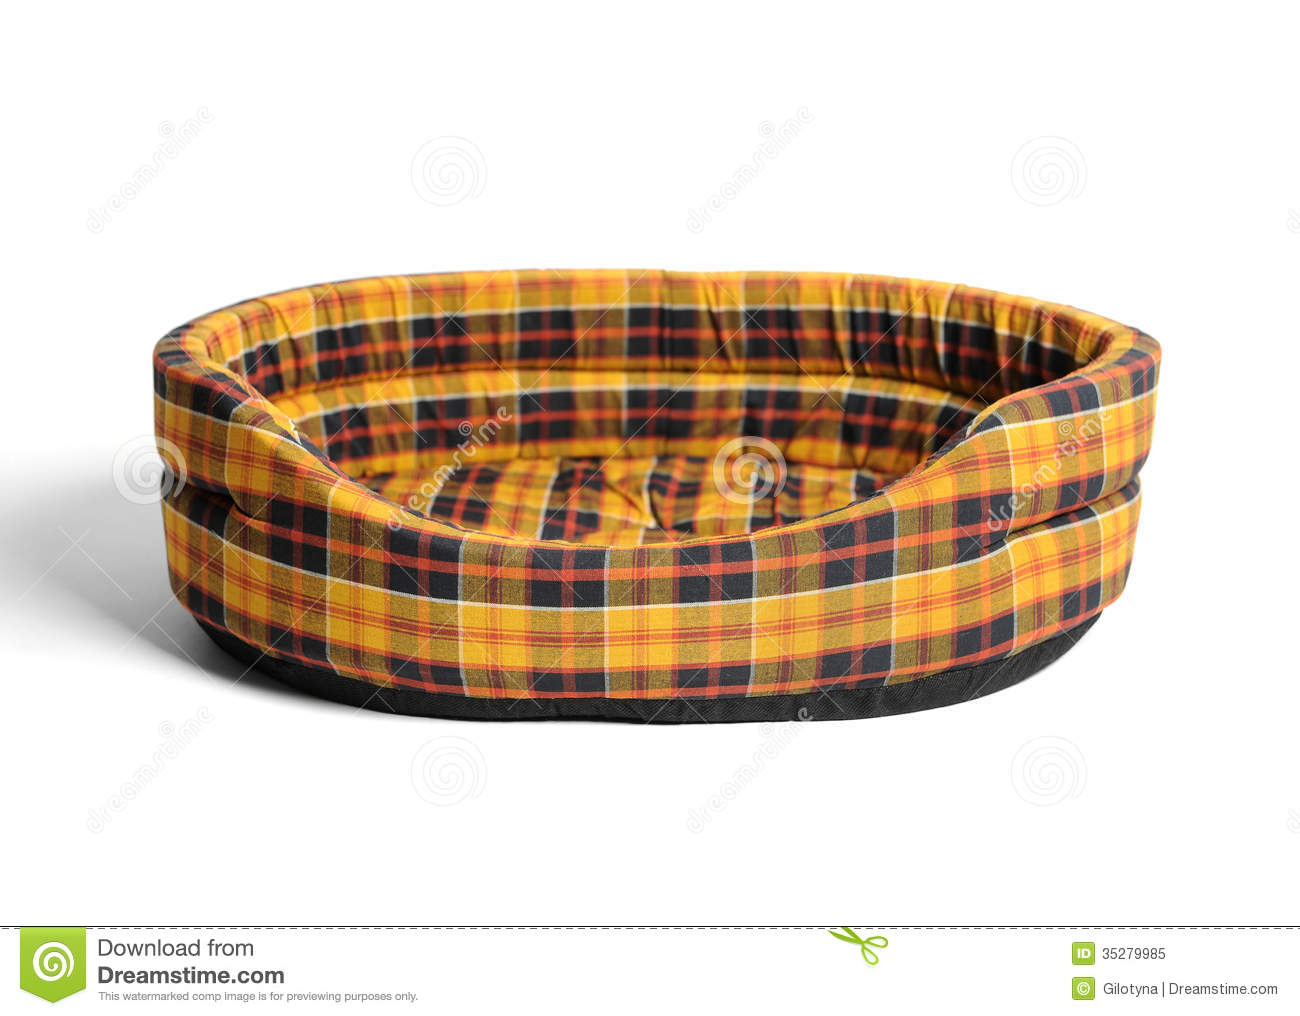 Cat Basket Clipart : Cat bed stock image of small domestic studio